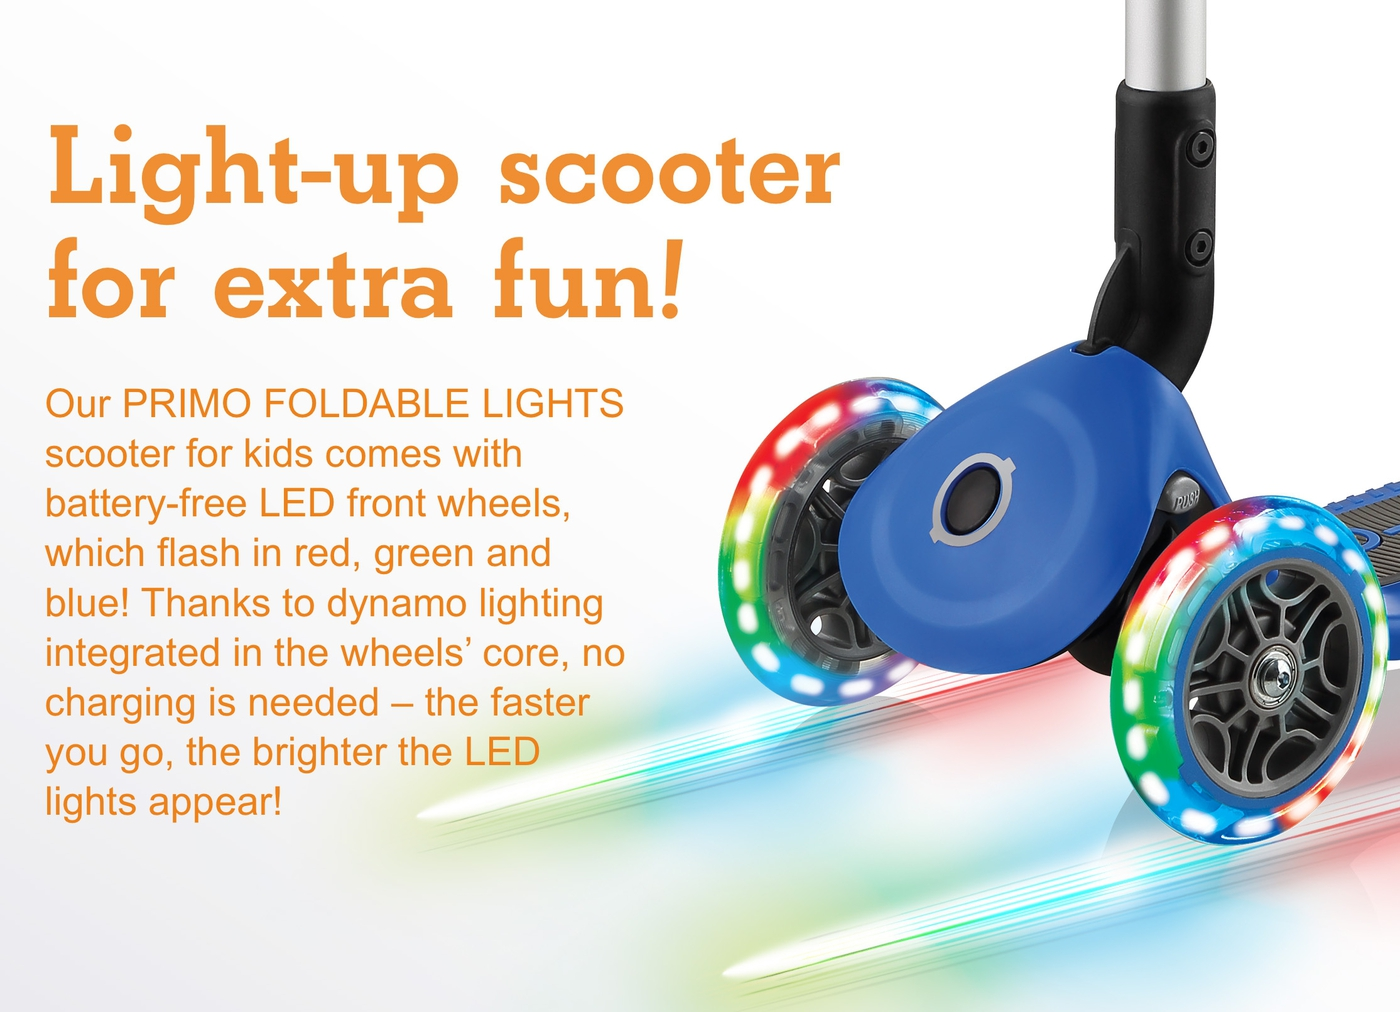 Light-up scooter for extra fun!